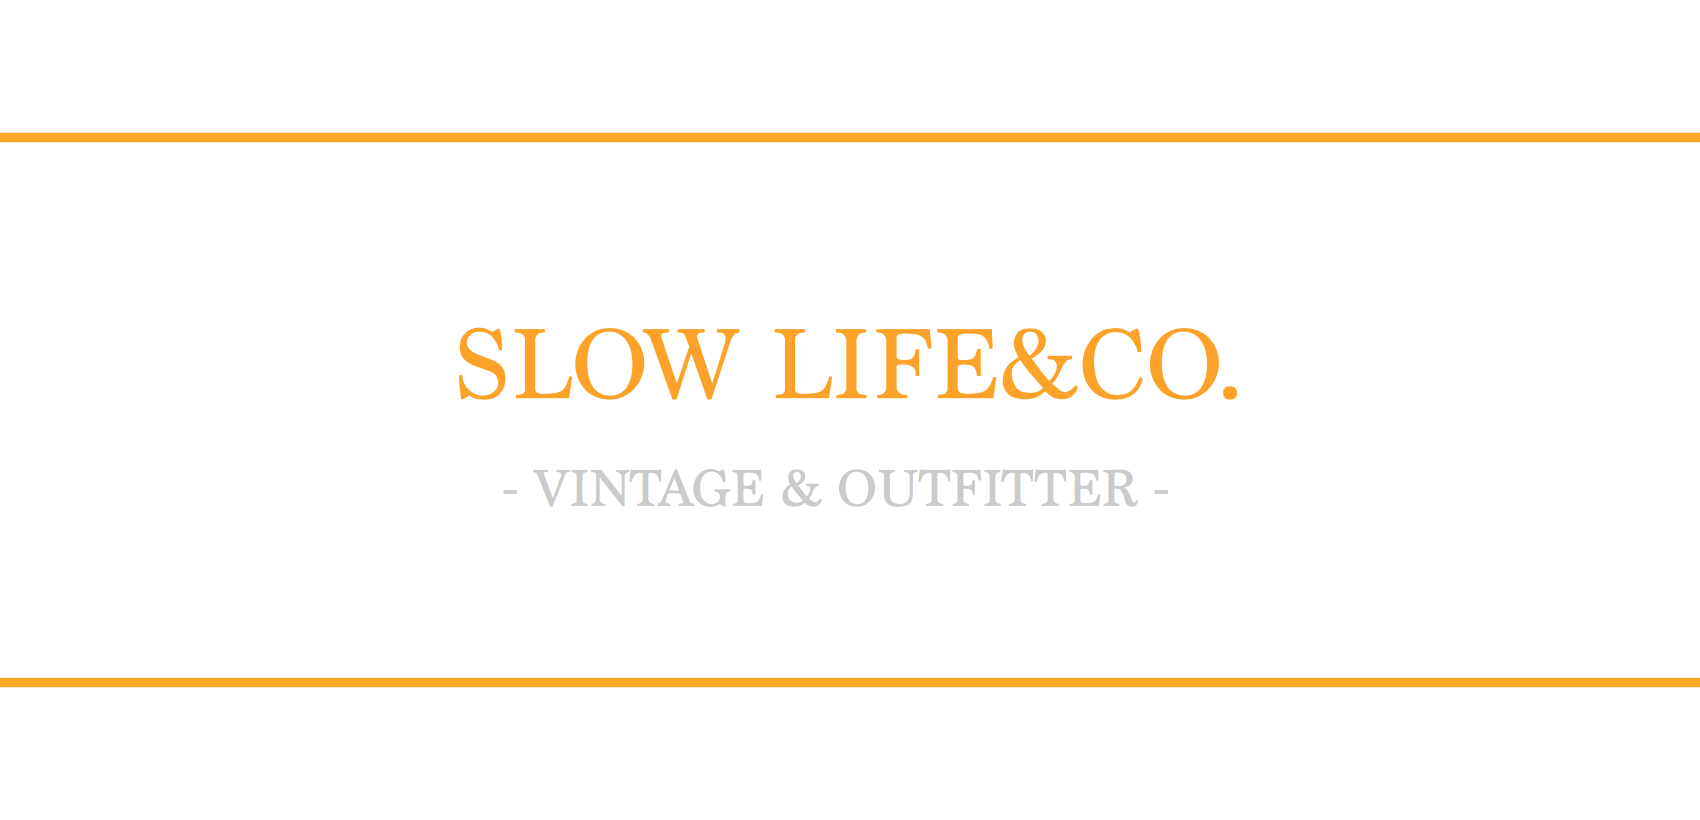 SLOW LIFE&CO.